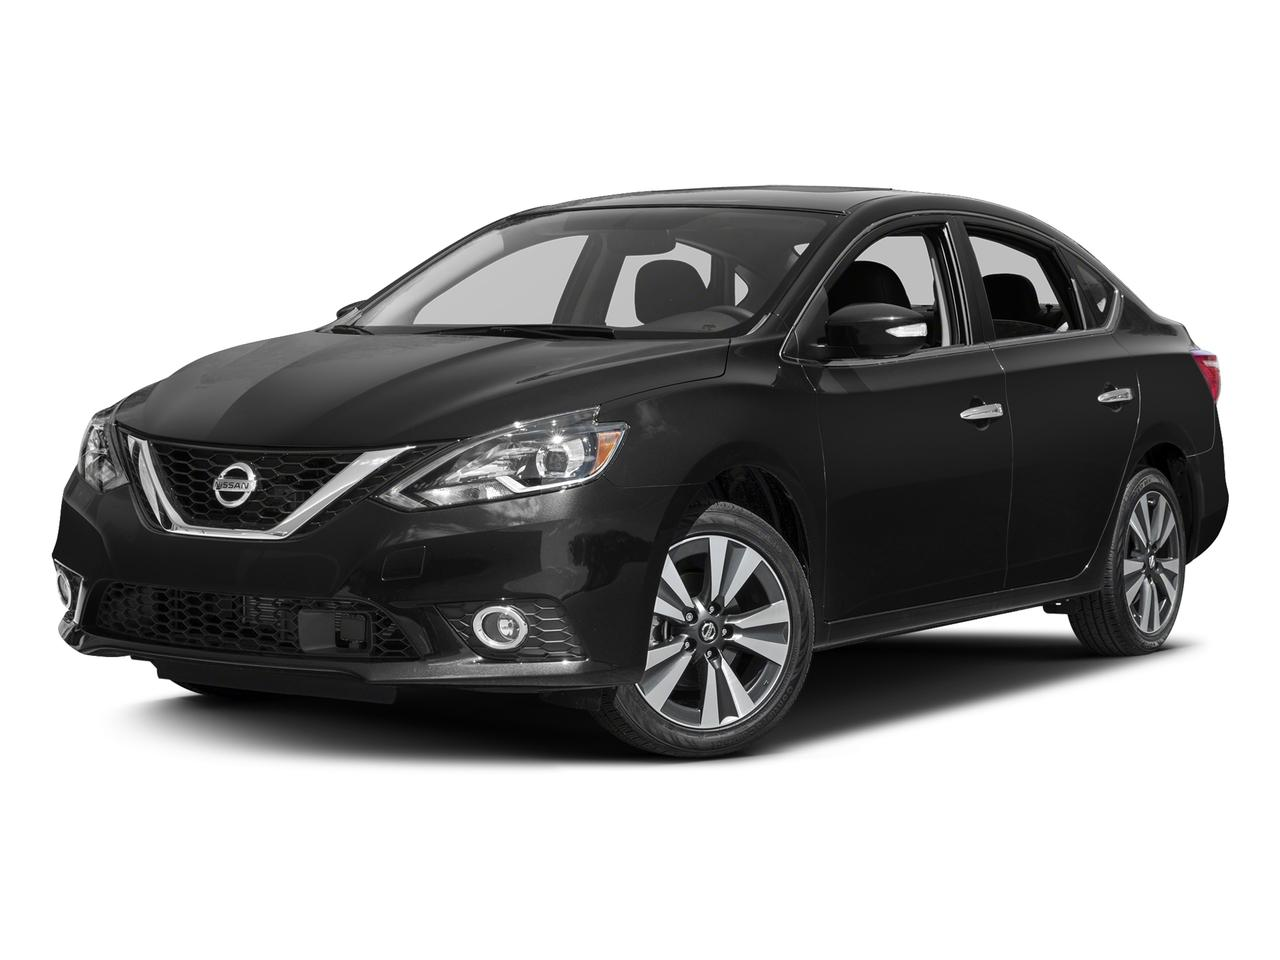 2017 Nissan Sentra Vehicle Photo in Florence, AL 35630